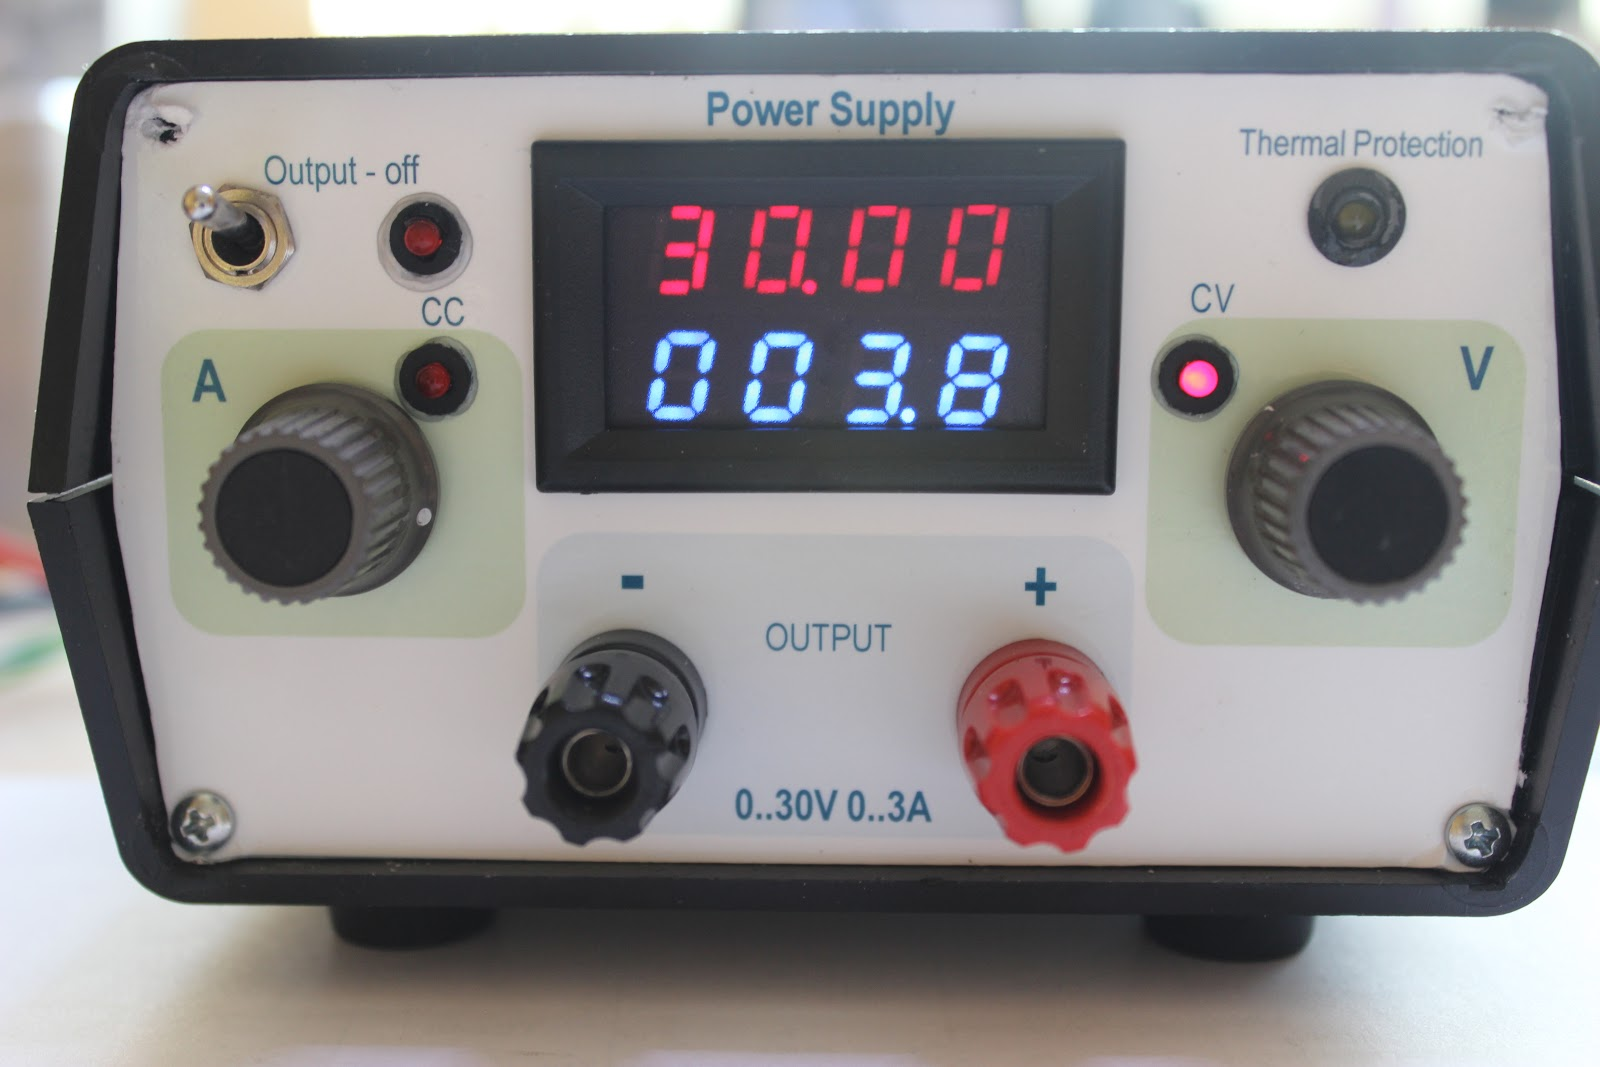 Pauls Diy Electronics Blog My New Power Supply Design Project Part 4 Electronic Components Regulated Dc And Here Is The Frontpanel I Make A In Powerpoint Print It With Photoprinter On Hp Premium Plus Photo Paper Glossy Type